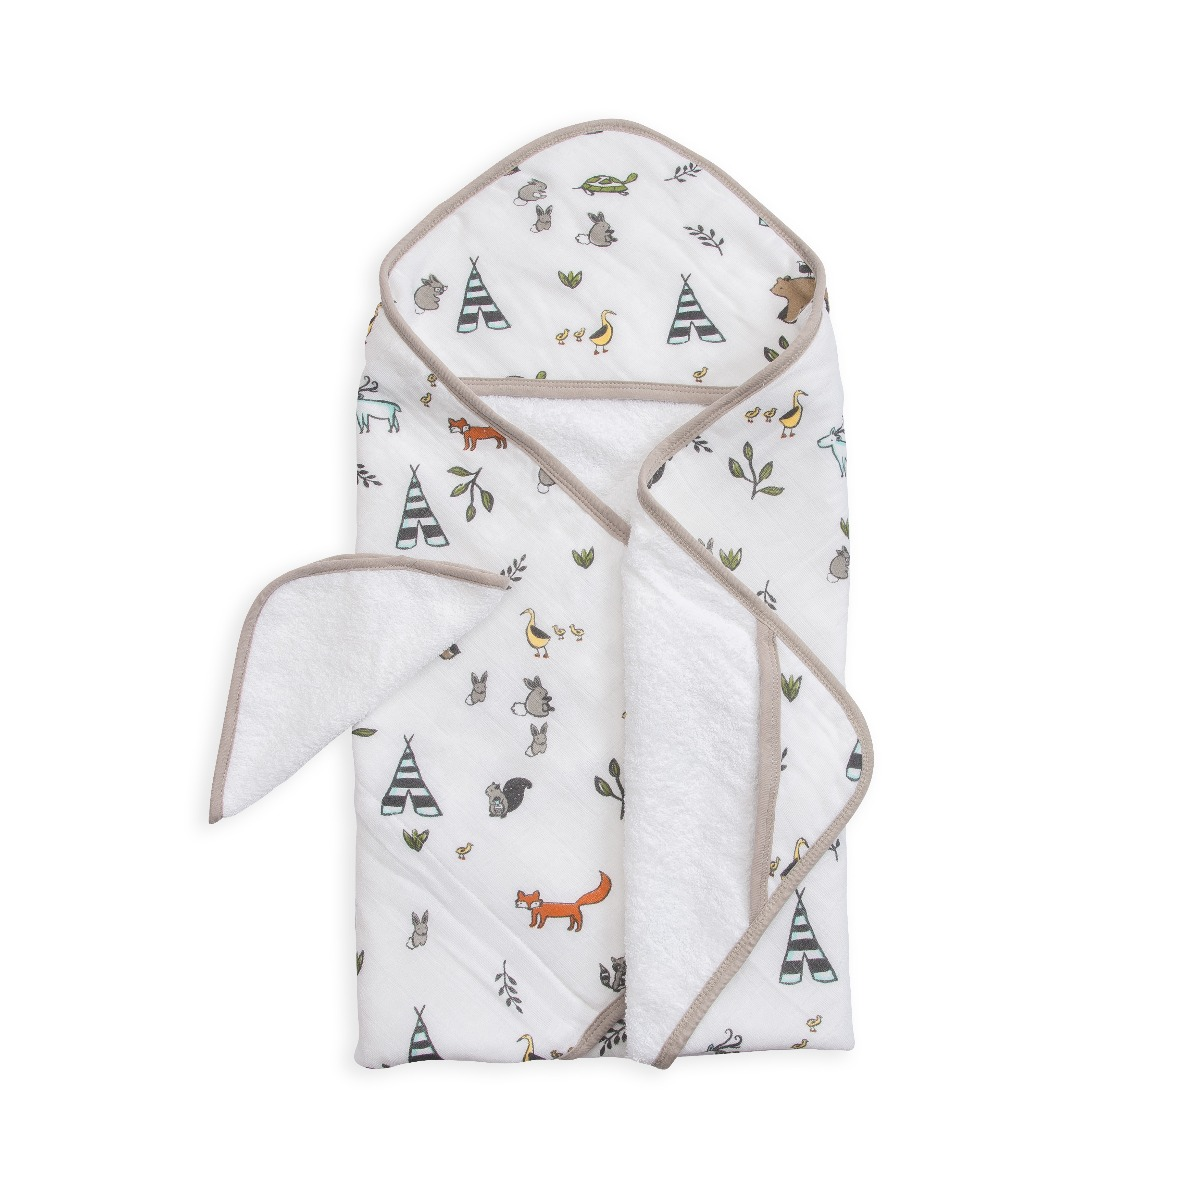 Little Unicorn Hooded Towel & Washcloth Set Forest Friends